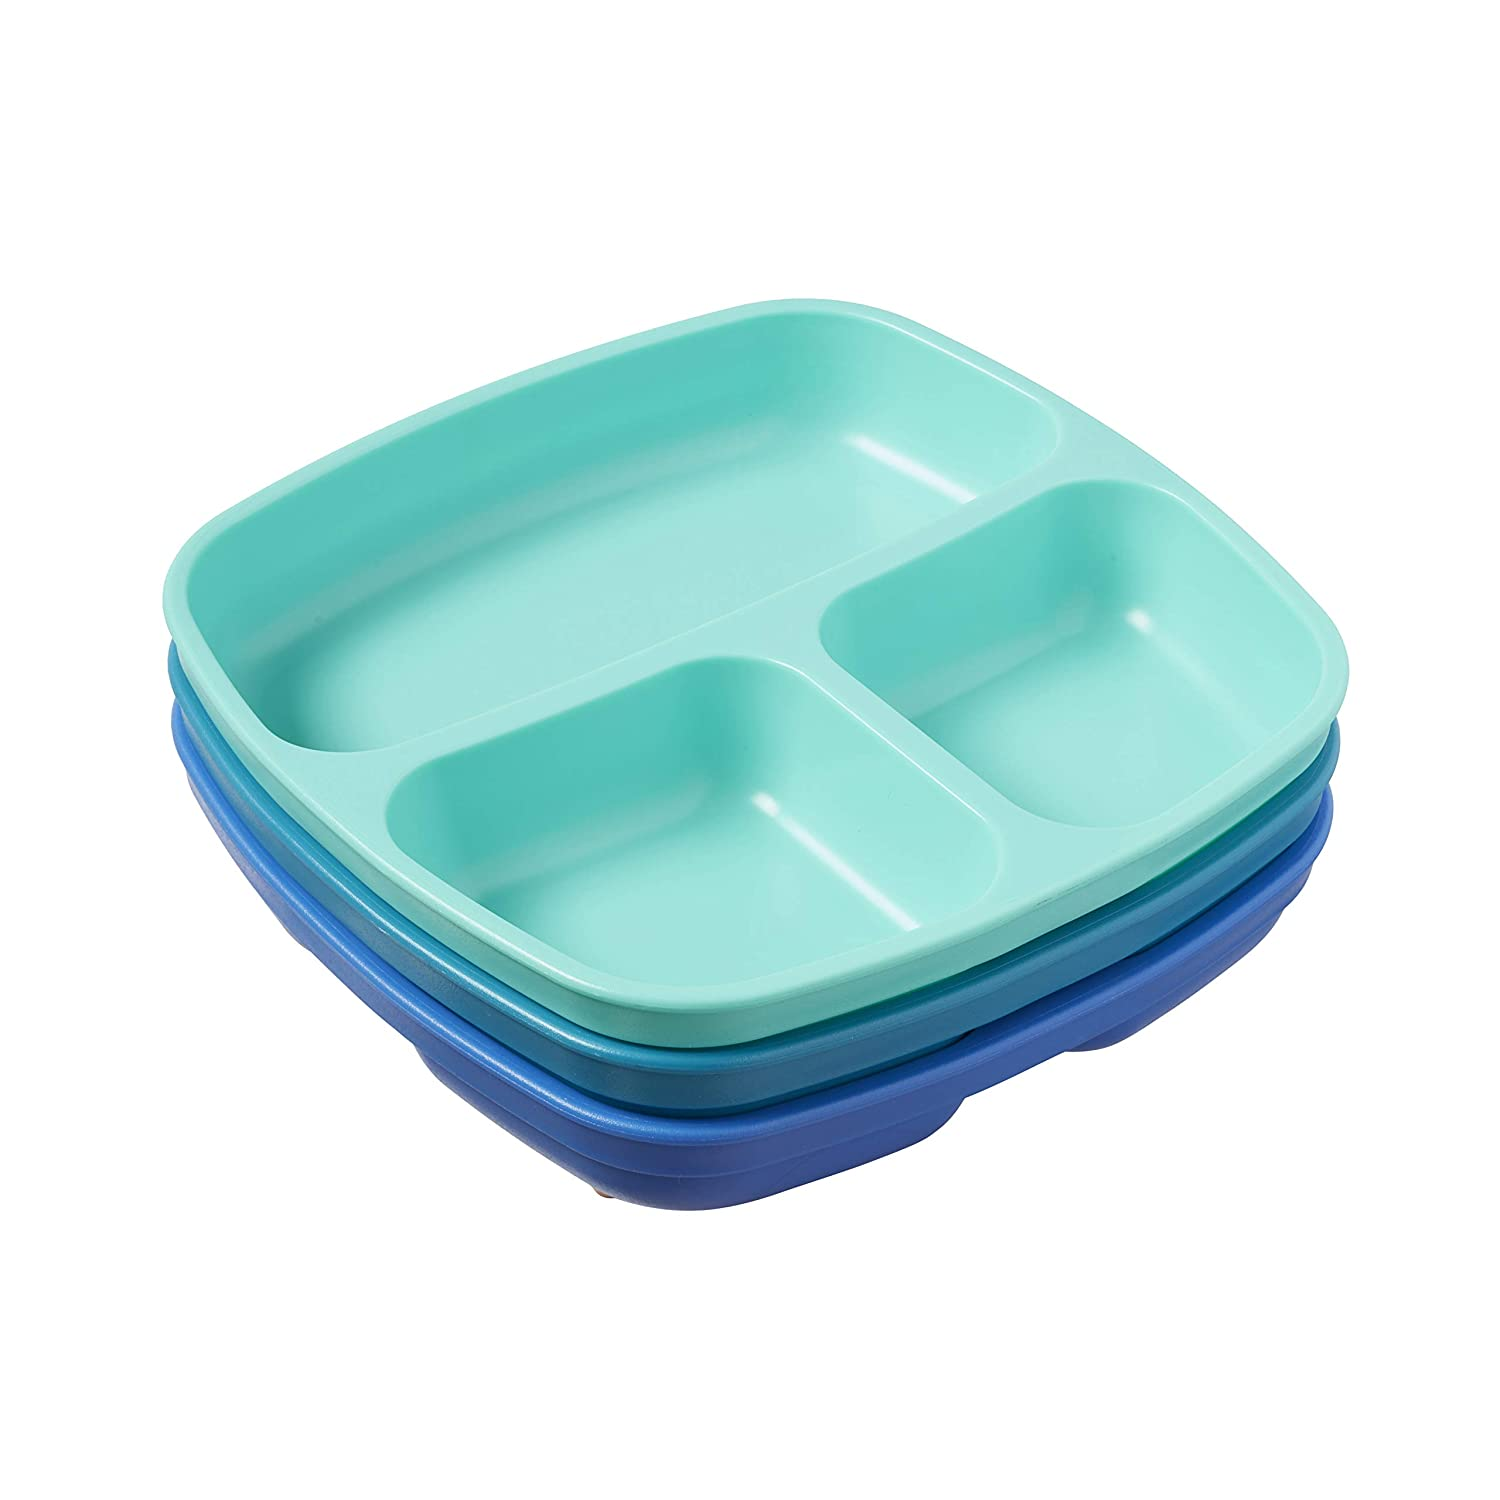 Tropical ECR4Kids My First Meal Pal Divided Plates Stackable Plates for Baby Dishwasher Safe Toddler and Child Feeding 3-Pack BPA-Free